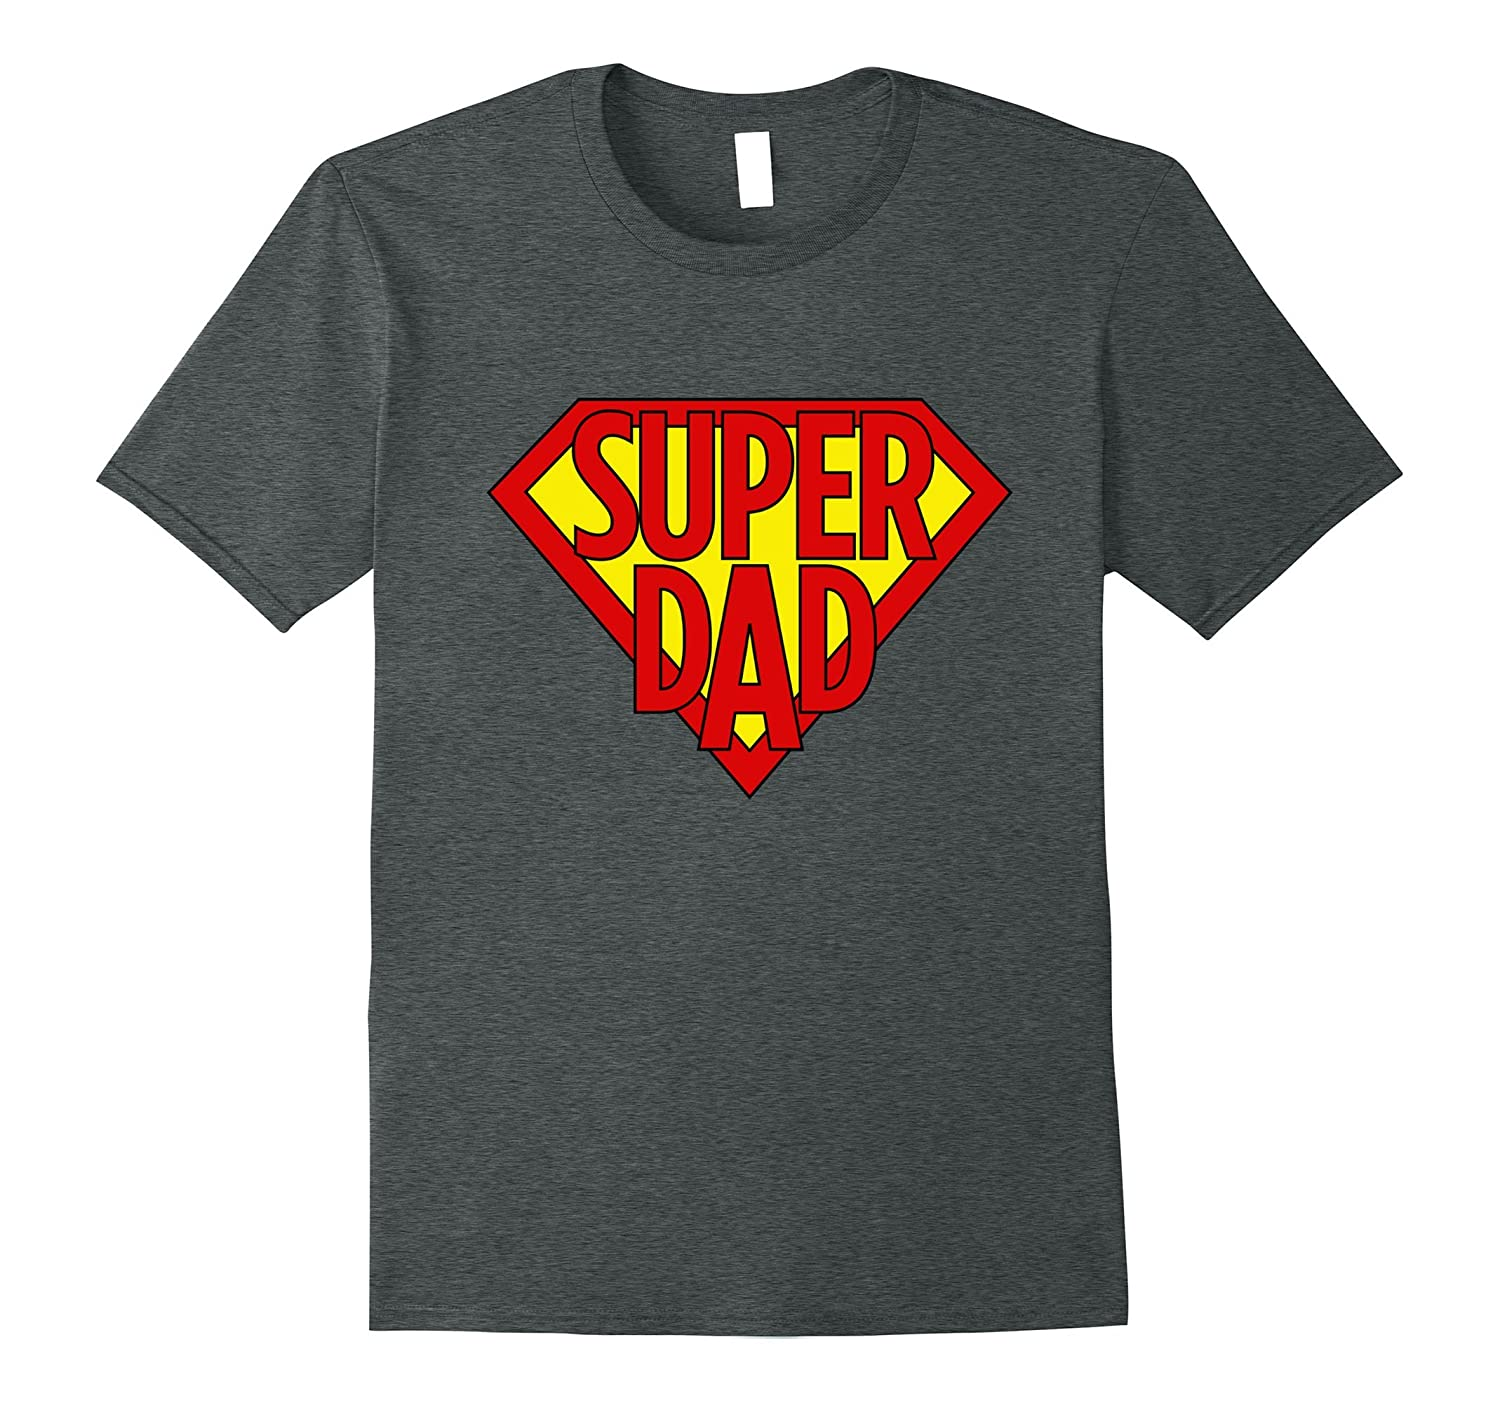 77ff79ac Mens Best Fathers Day T Shirt Funny Captain Super Hero Dad Tshirt-ah my  shirt